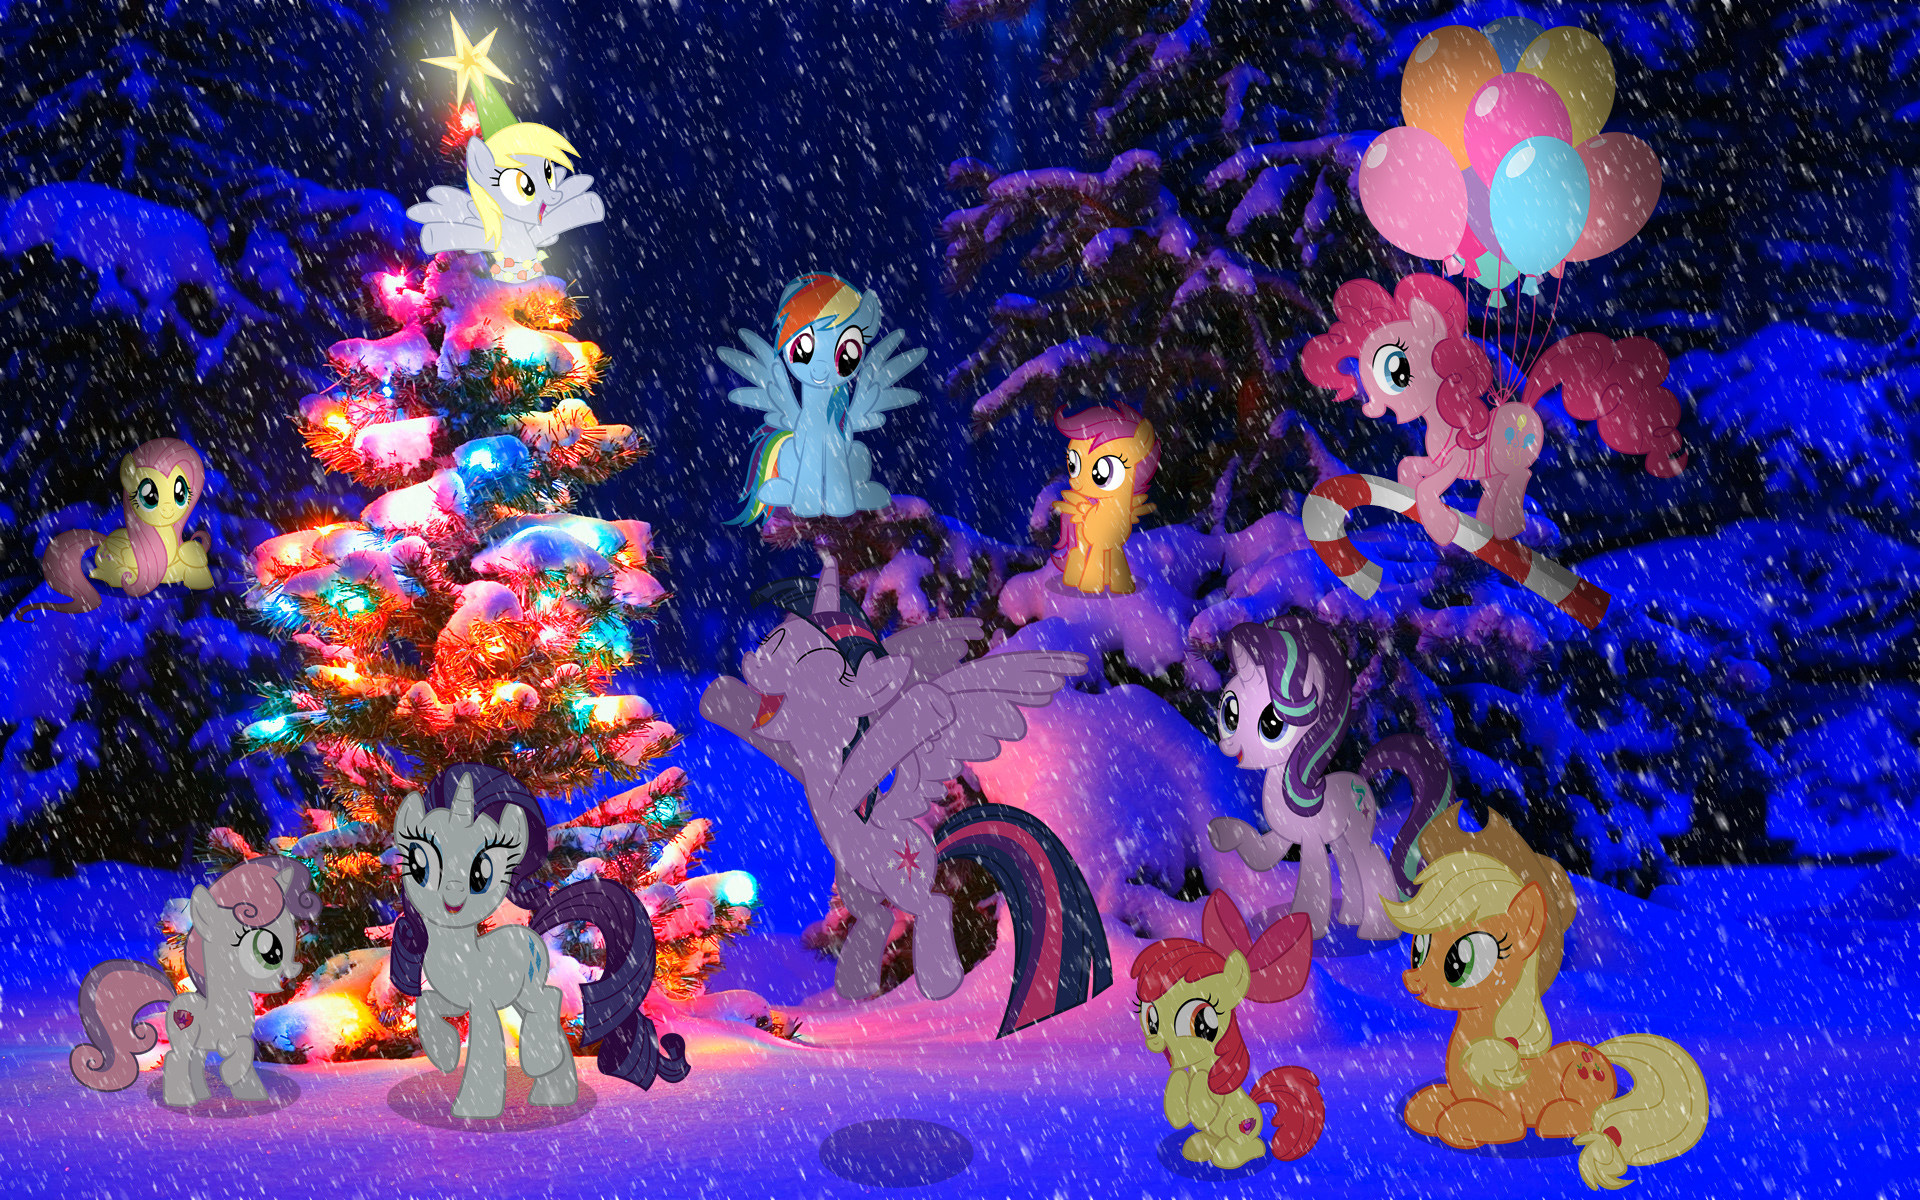 Free Christmas Wallpaper Backgrounds.Christmas Wallpaper Backgrounds For Computer Wallpapertag